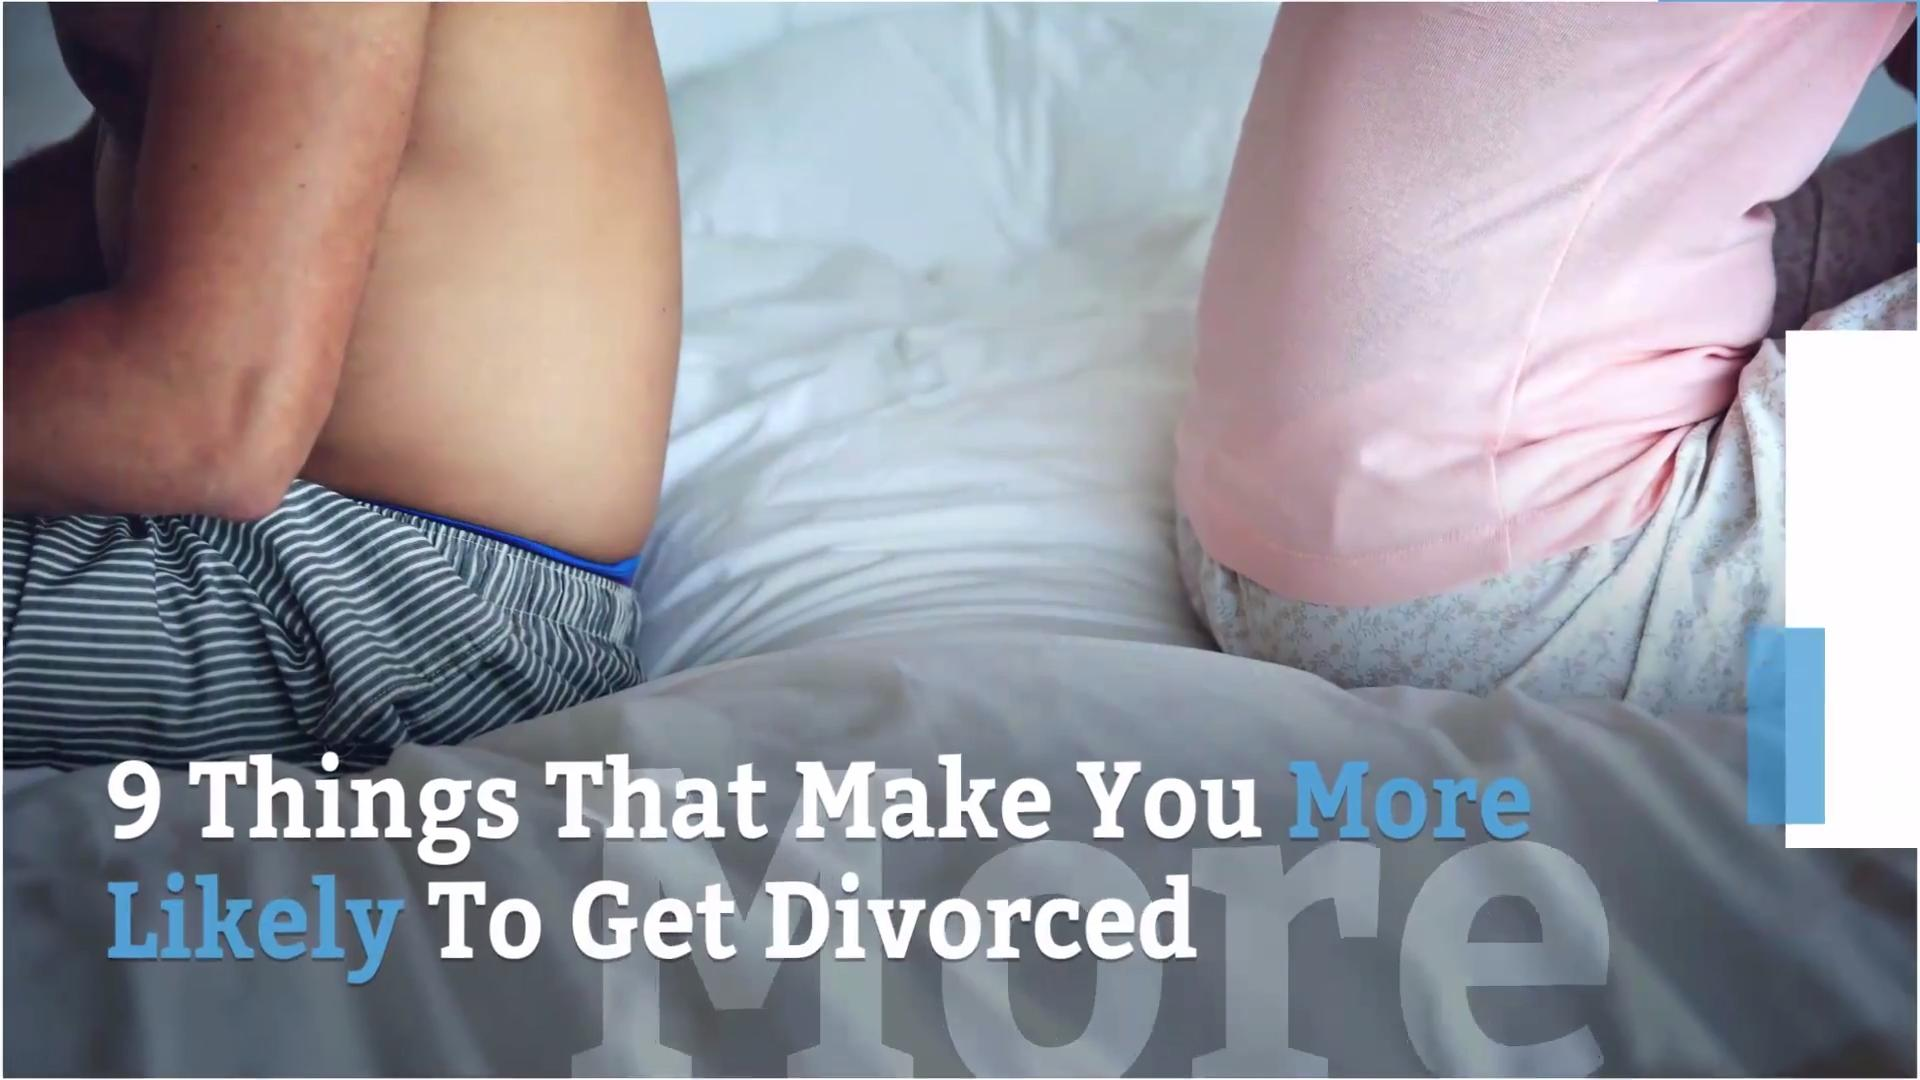 Divorce risk factors